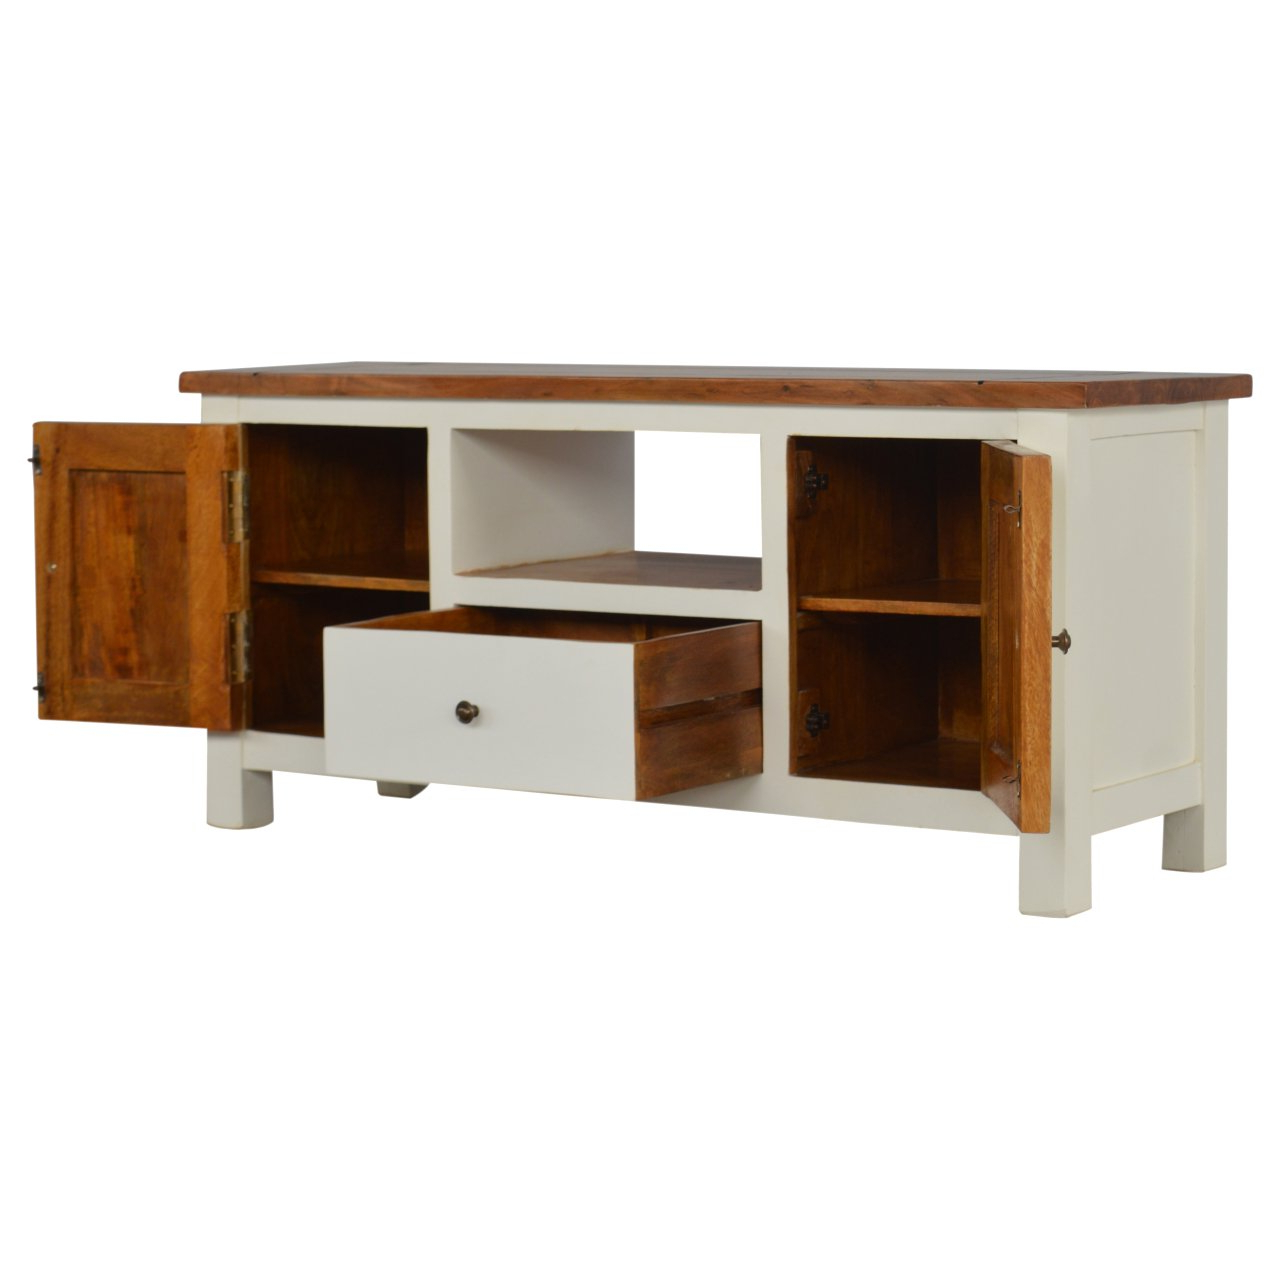 """Recent Country Two Tone Solid Wood Tv Stand For Tvs Up To 43 Inside Quillen Tv Stands For Tvs Up To 43"""" (View 12 of 20)"""